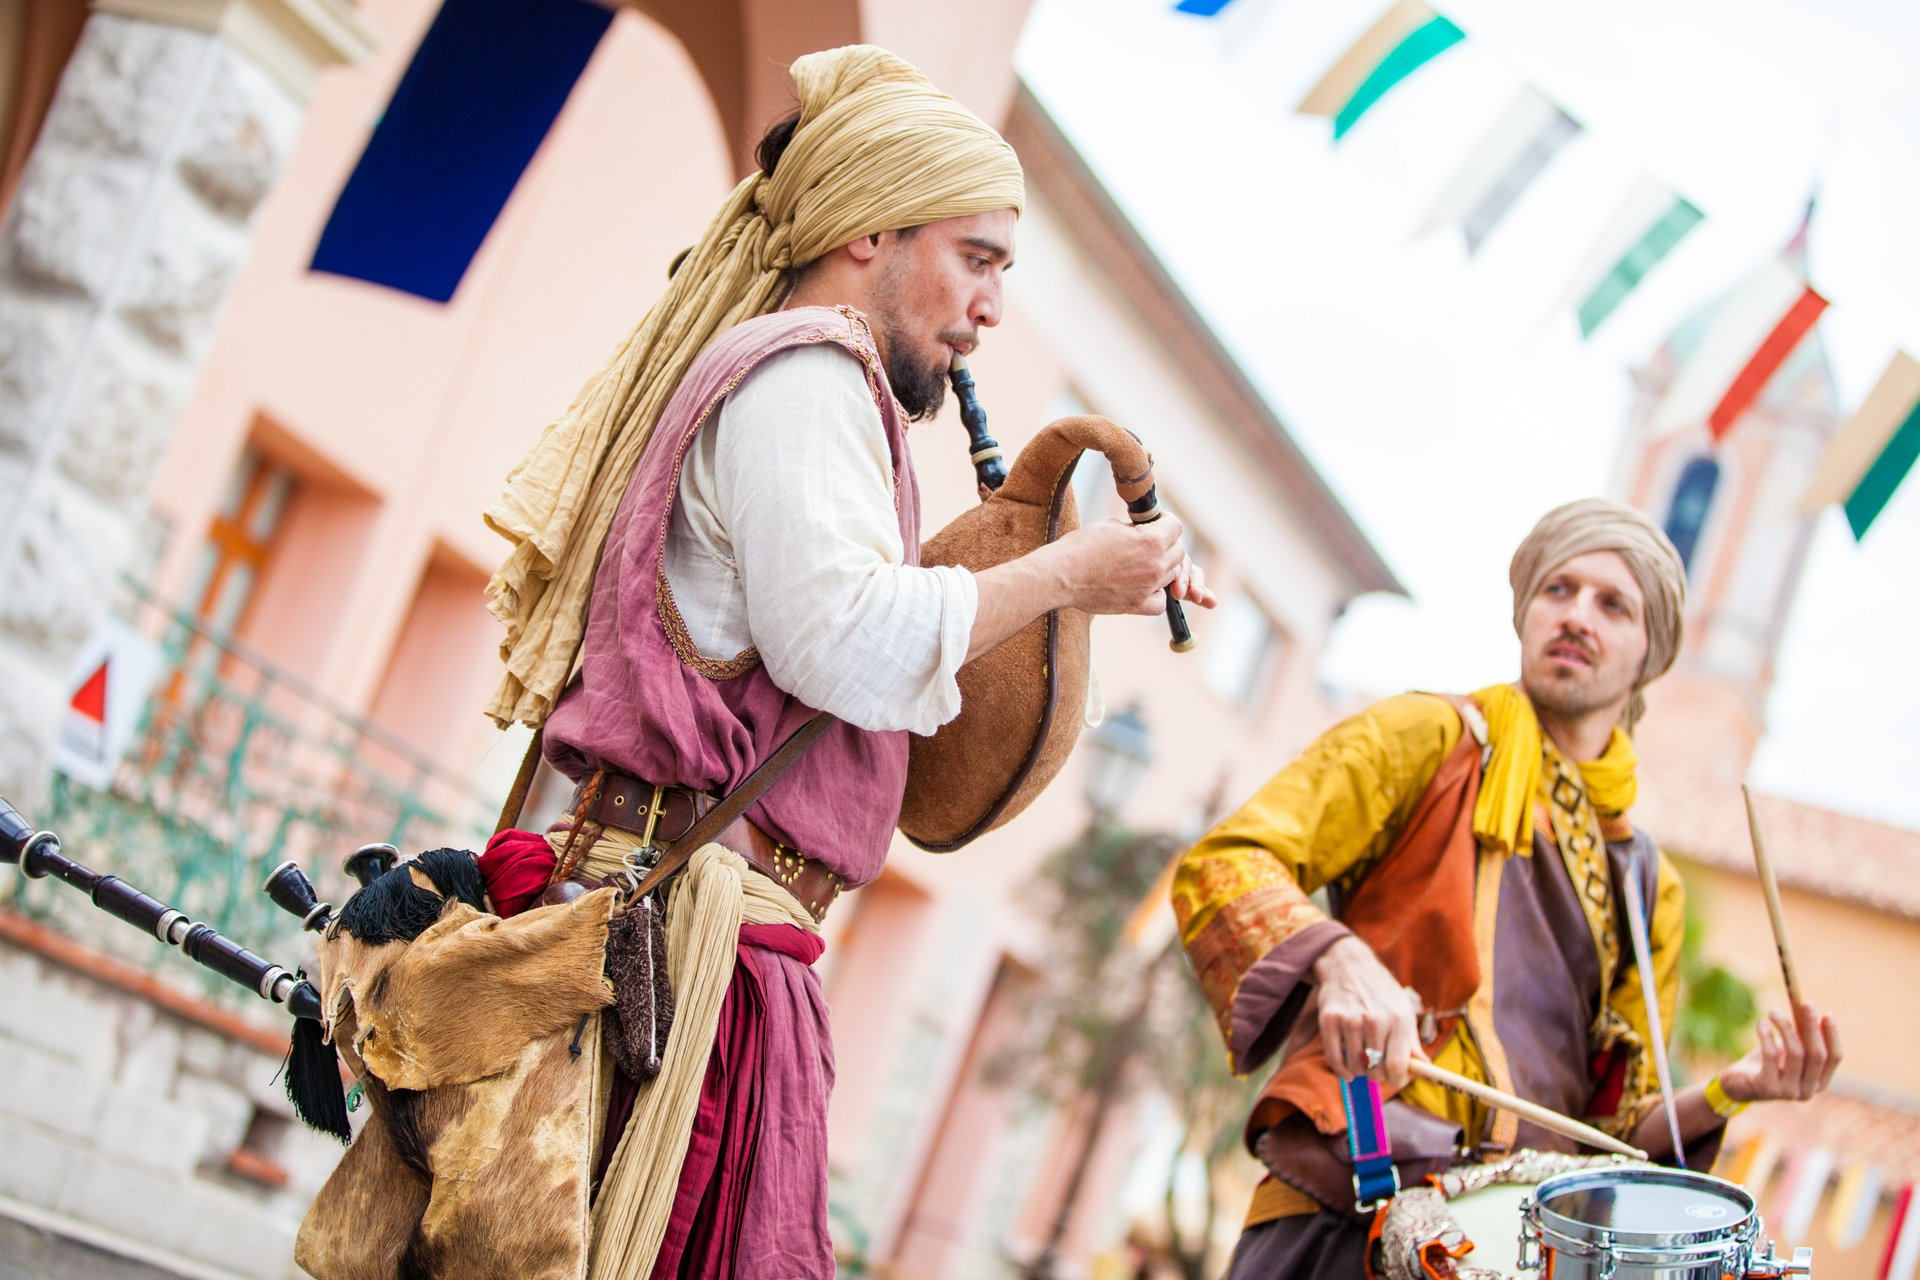 Tourrette-Levens Medieval Festival in Provence & French Riviera - Best Season 2020